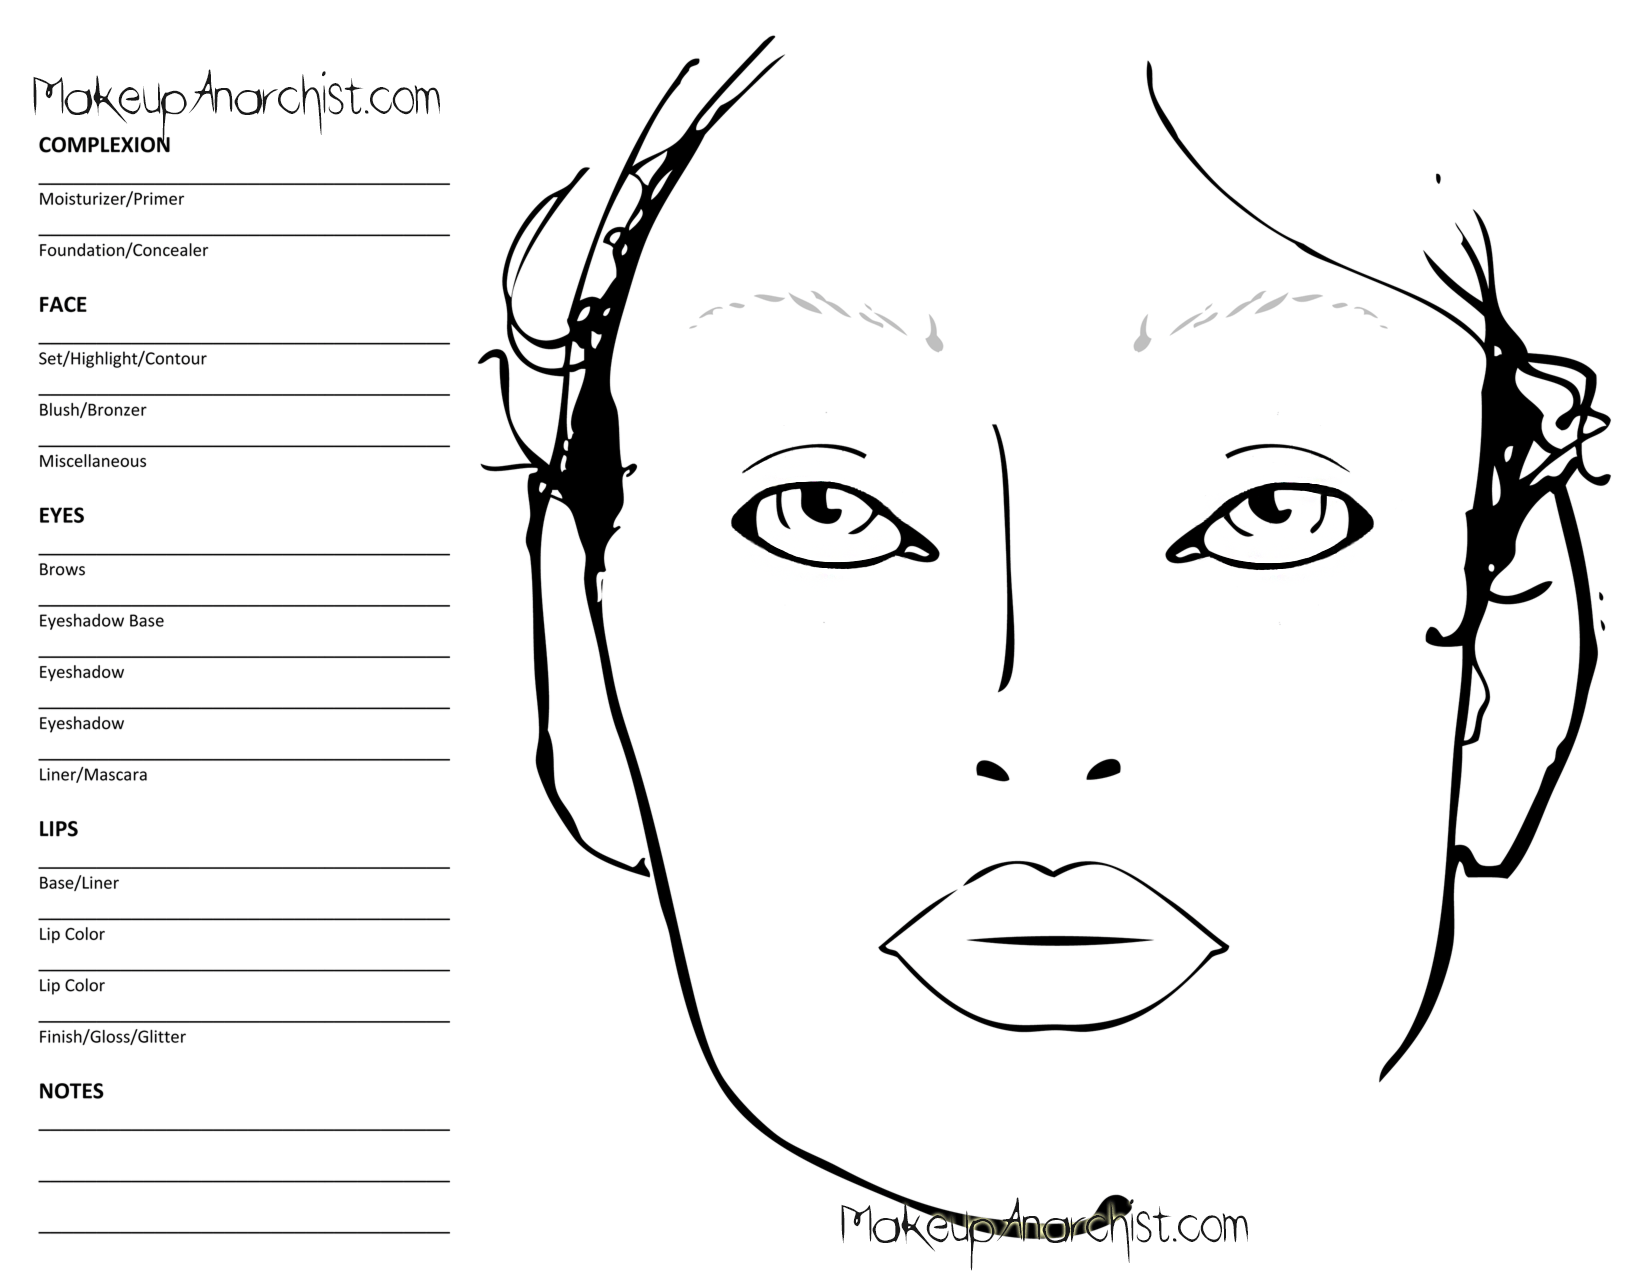 blank face diagram botox baseball diamond printable charts for makeup vidalondon